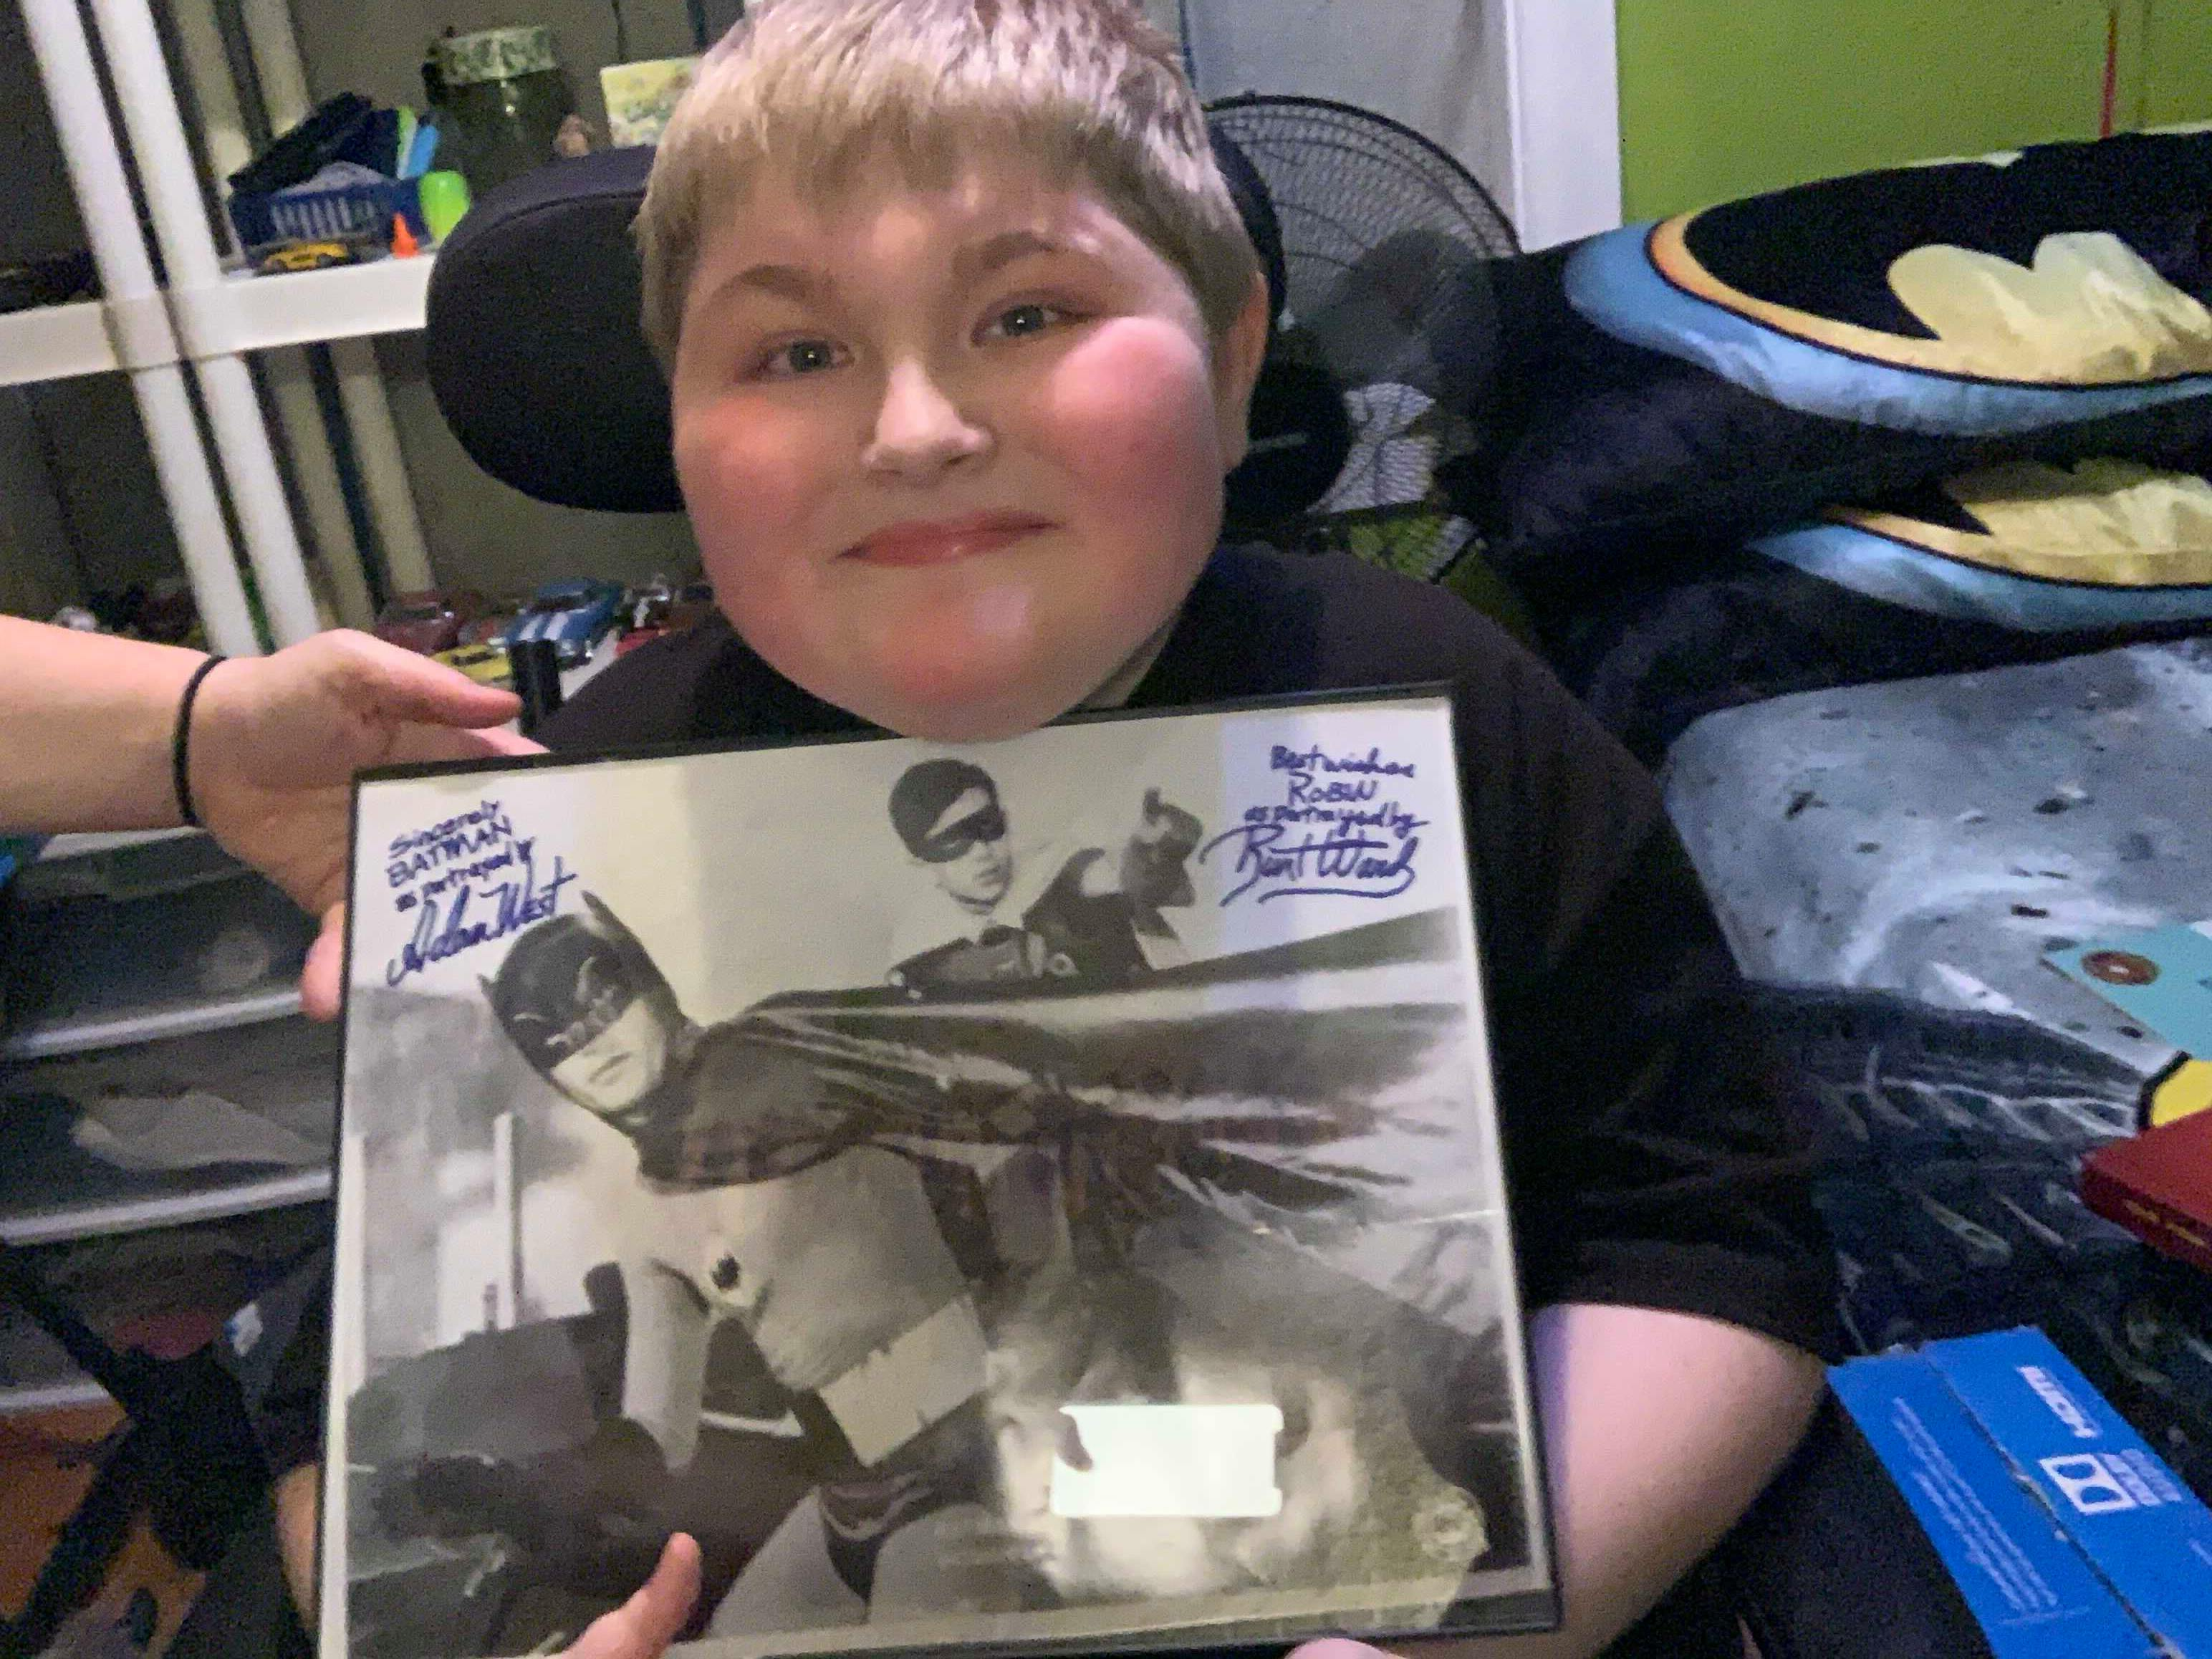 Owen Knight with one of the gifts he received for his 15th birthday. (photo provided for WHAM)